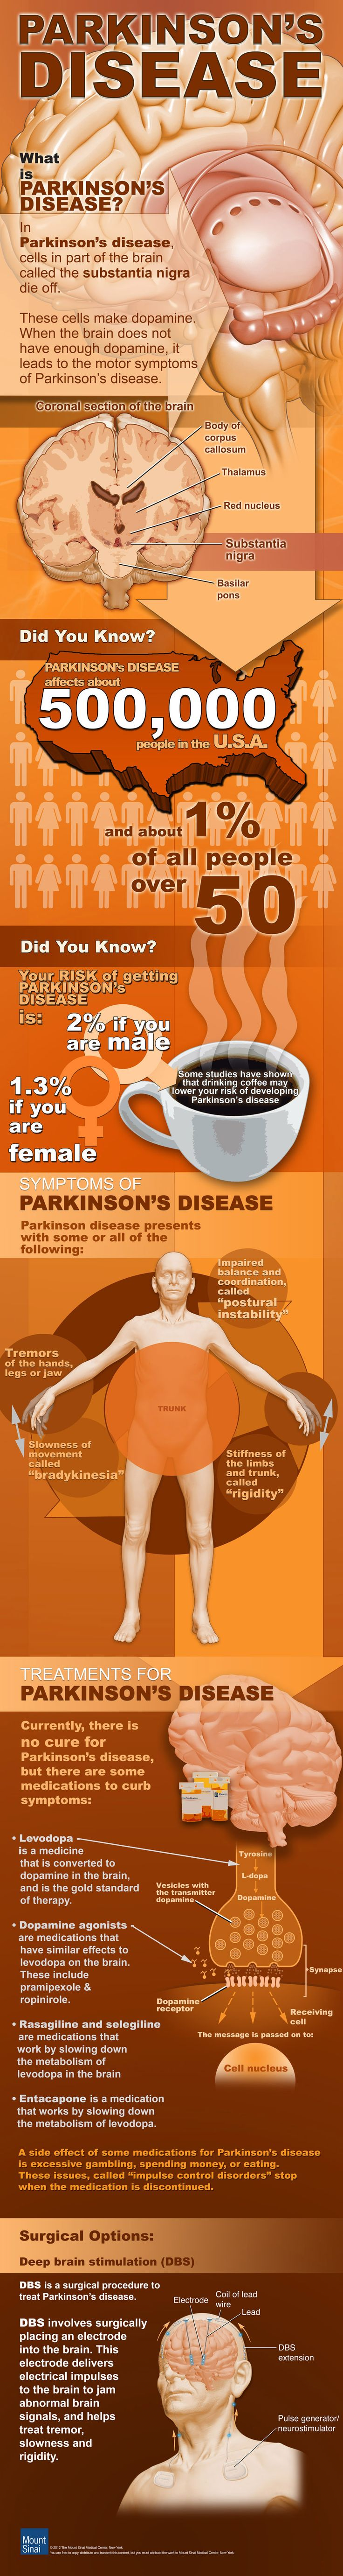 About Parkinson's Disease